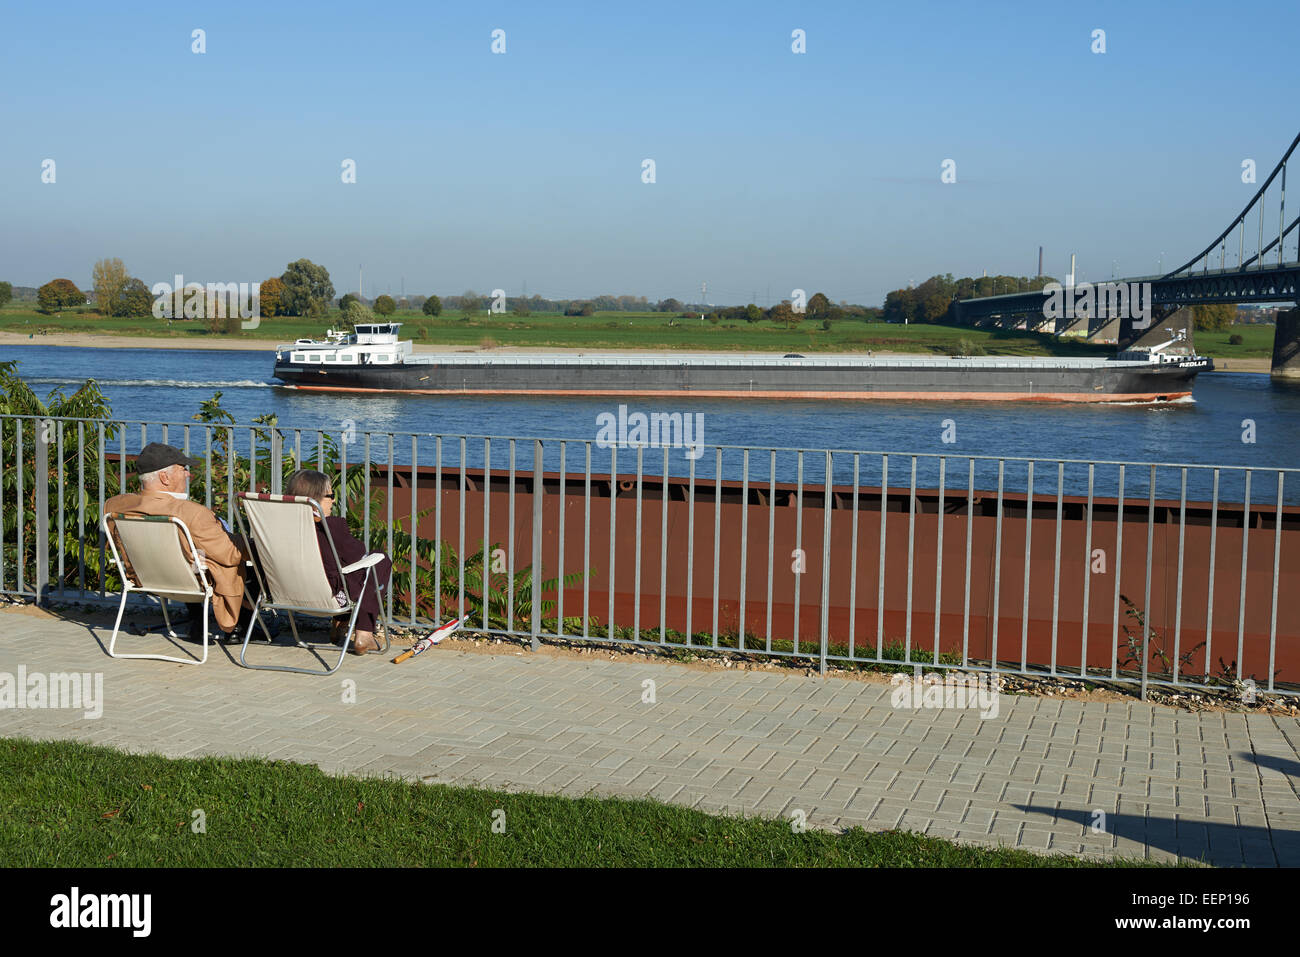 Elderly couple sitting on the banks of the river Rhine, Krefeld, Germany. - Stock Image